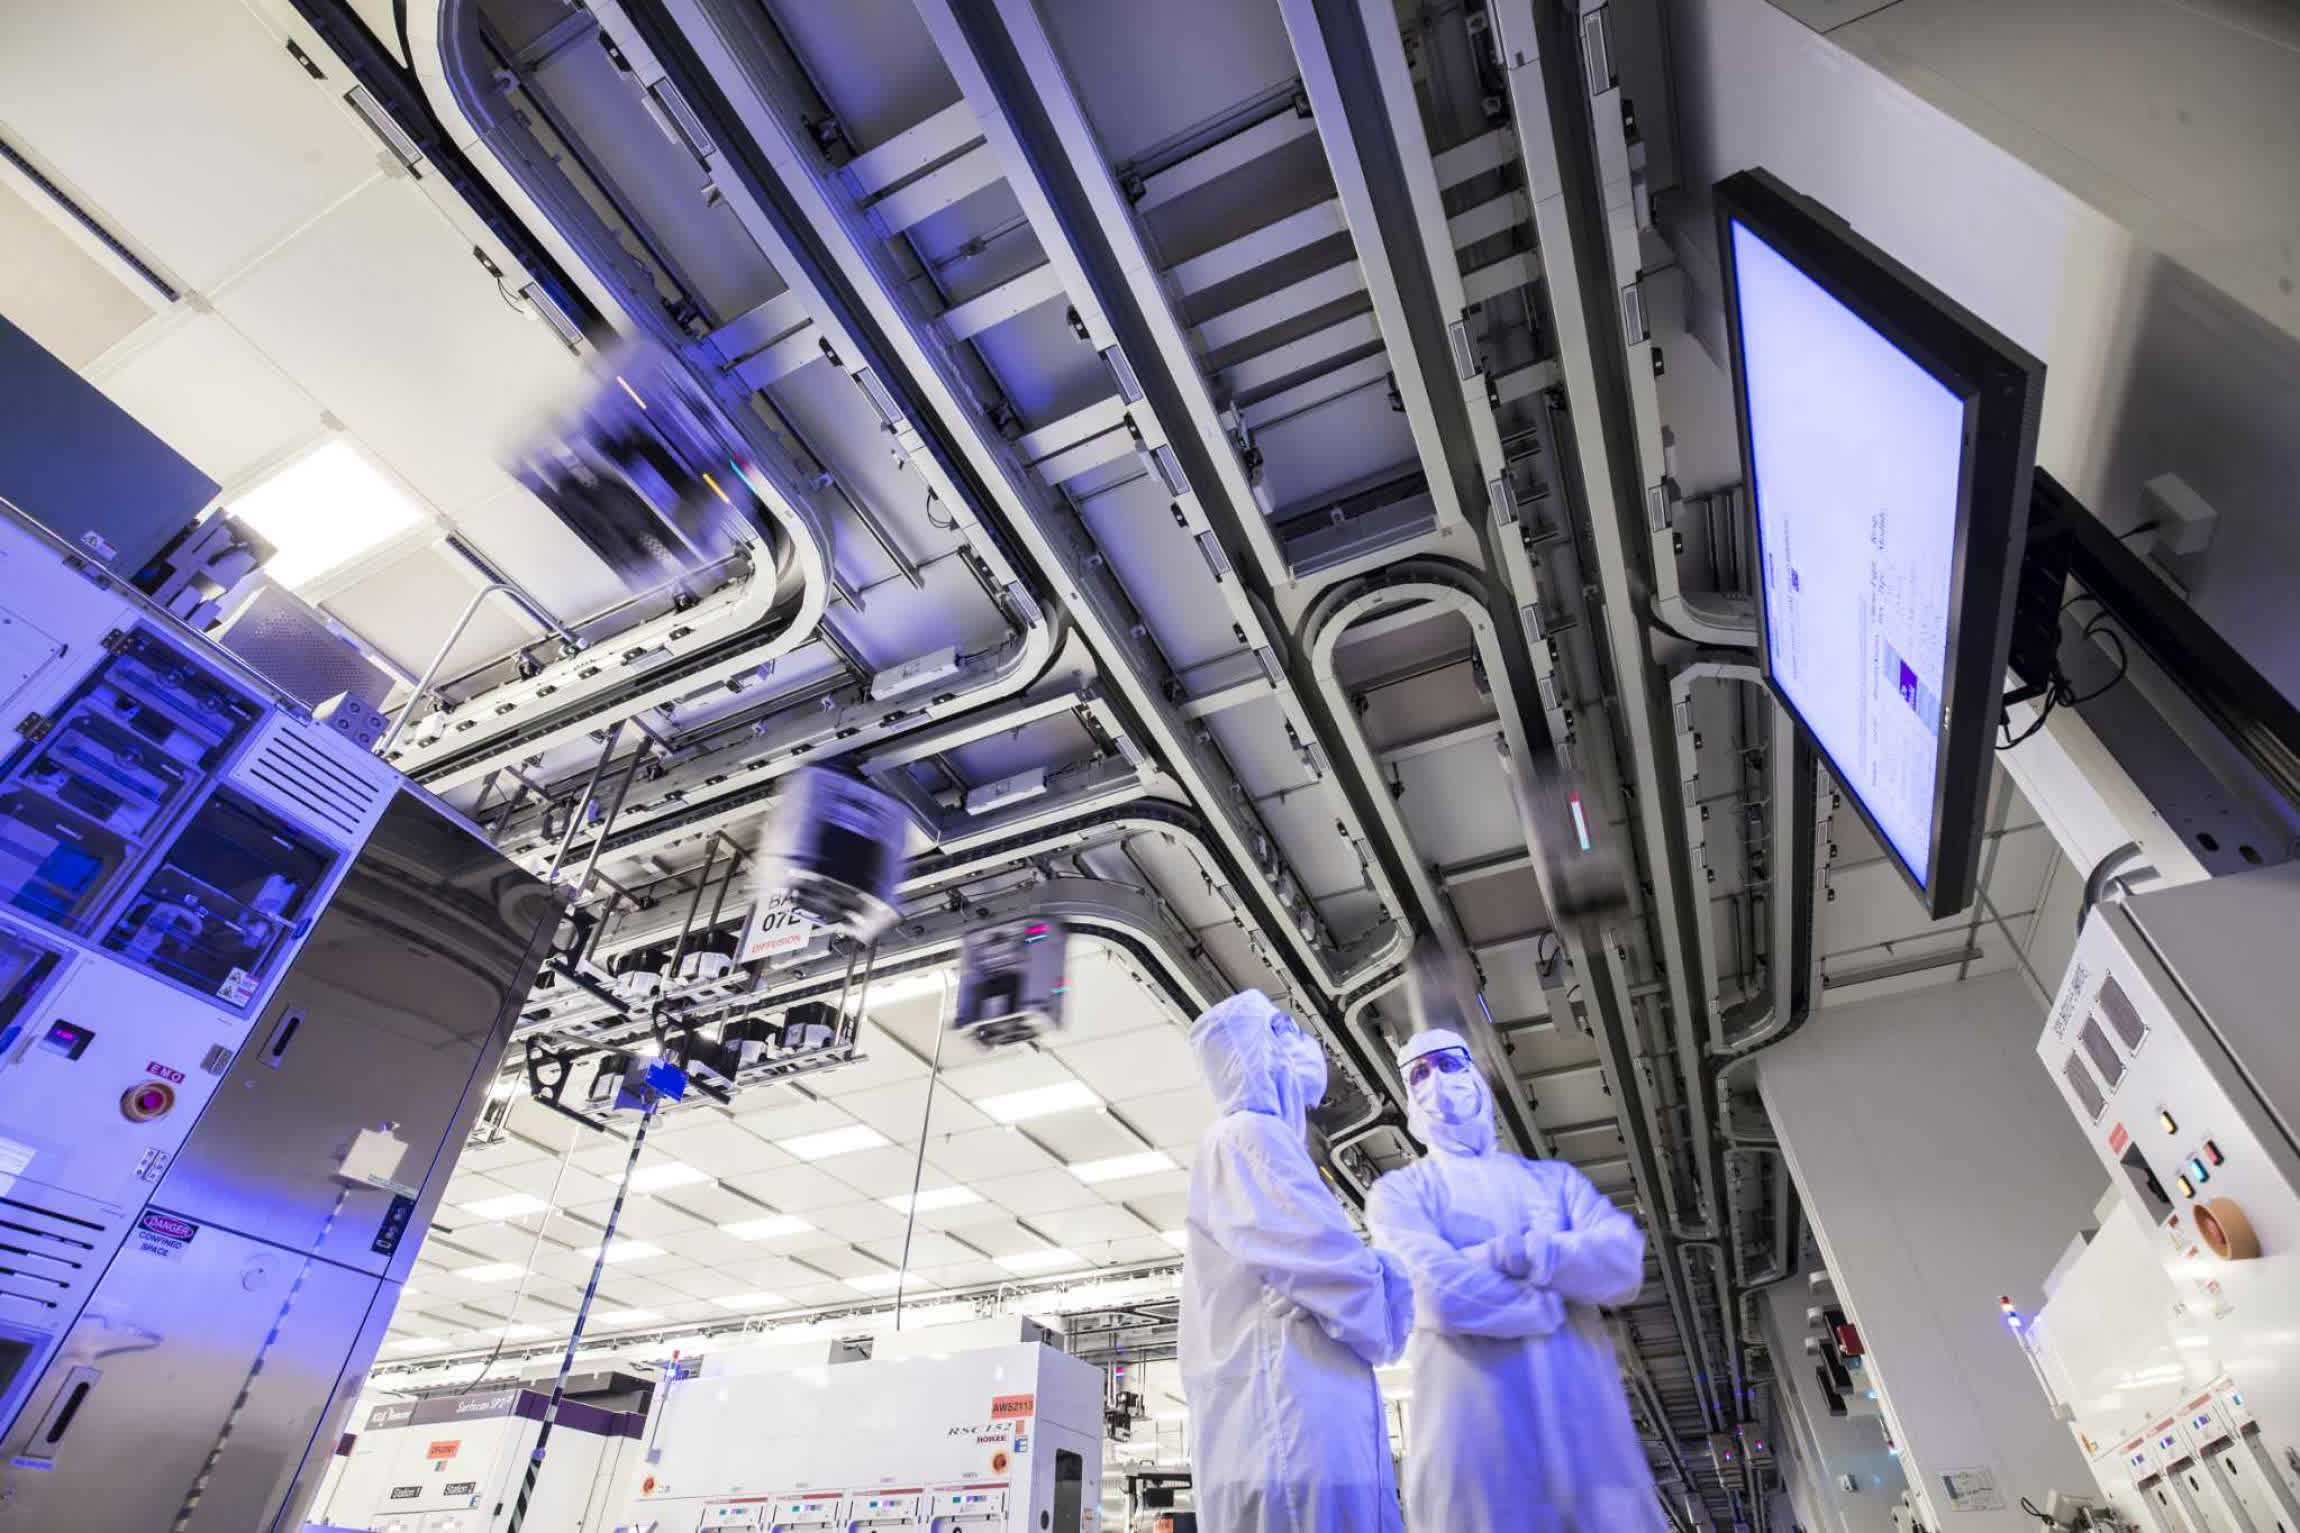 GlobalFoundries reveals new strategy, $4B fab expansion